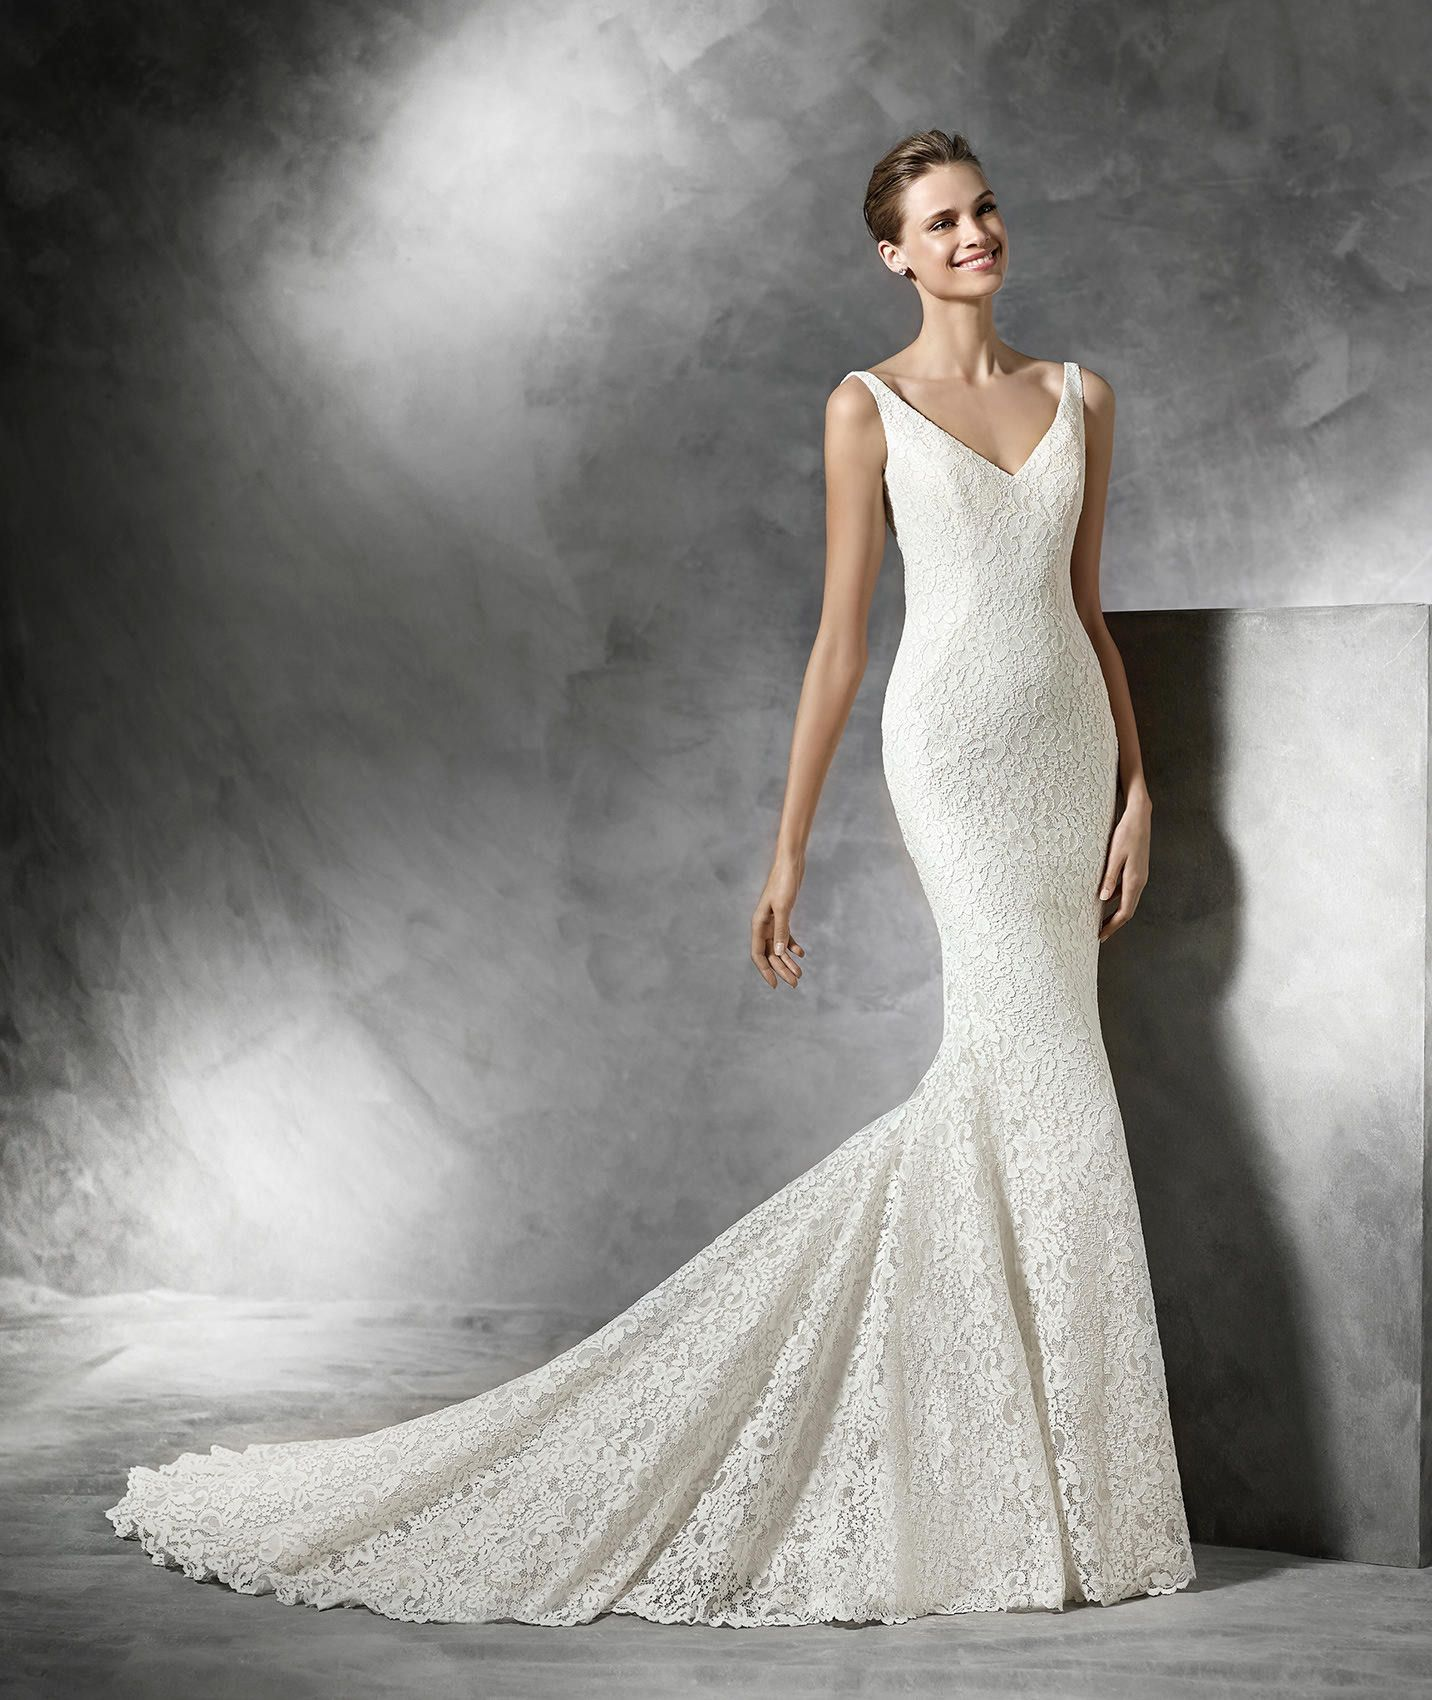 Pronovias, size 8/10   Gowns at Silk   Pinterest   Wedding dress and ...